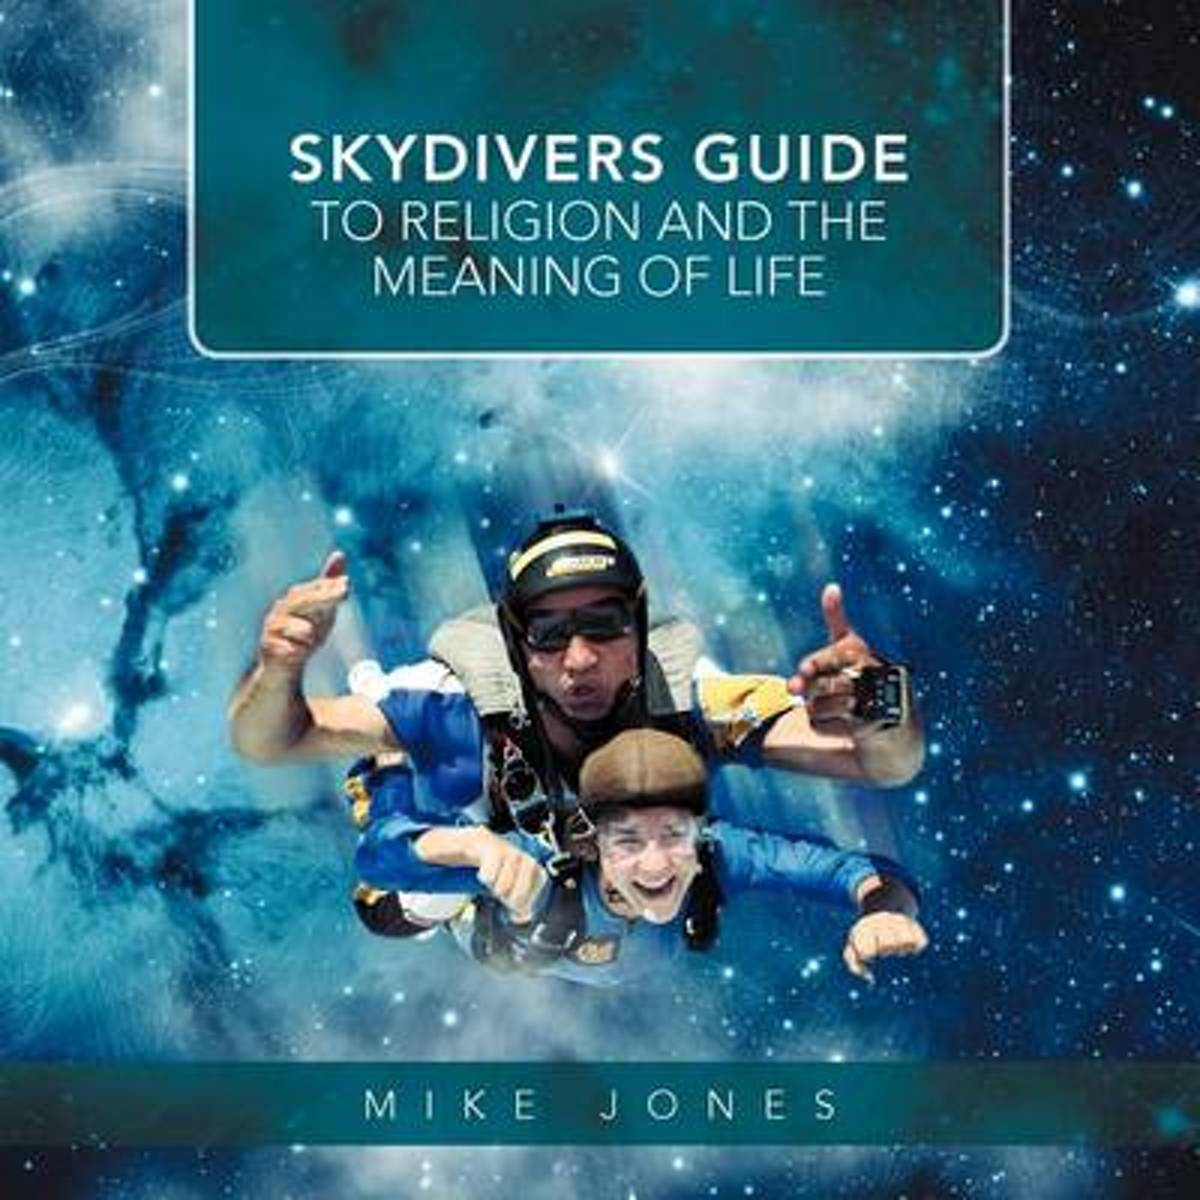 Skydivers Guide to Religion and the Meaning of Life